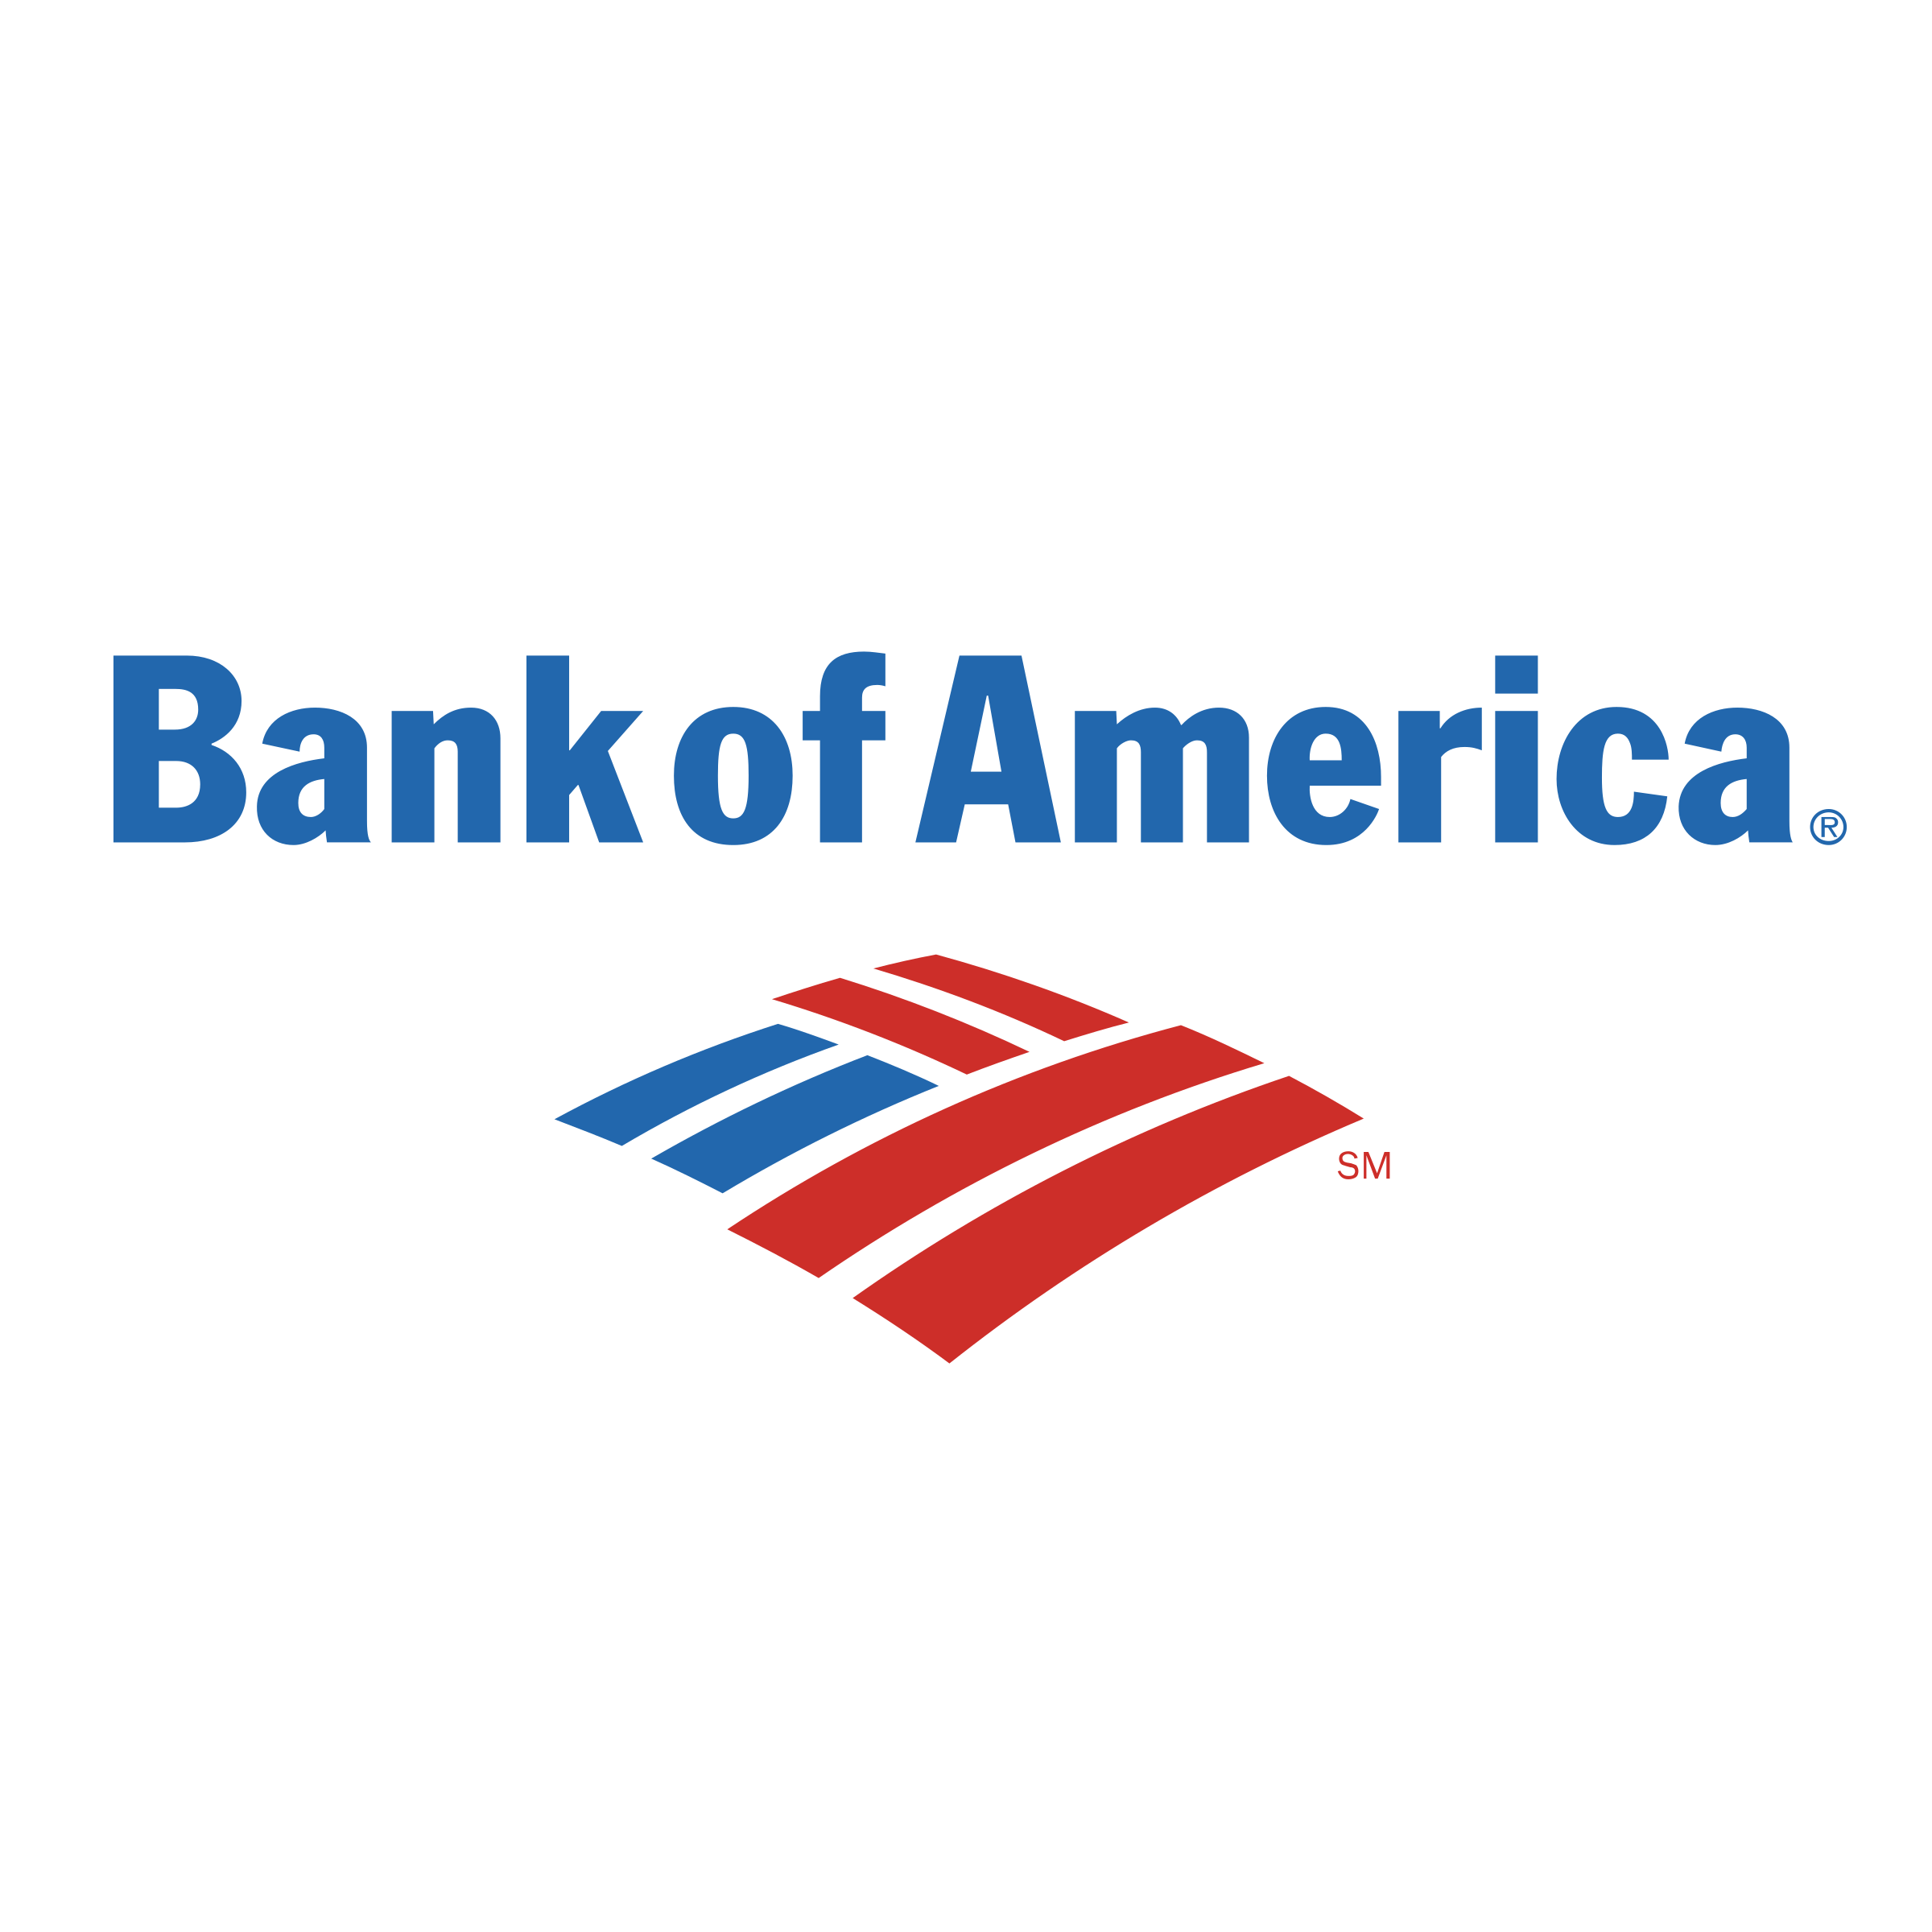 bank of america_2.png